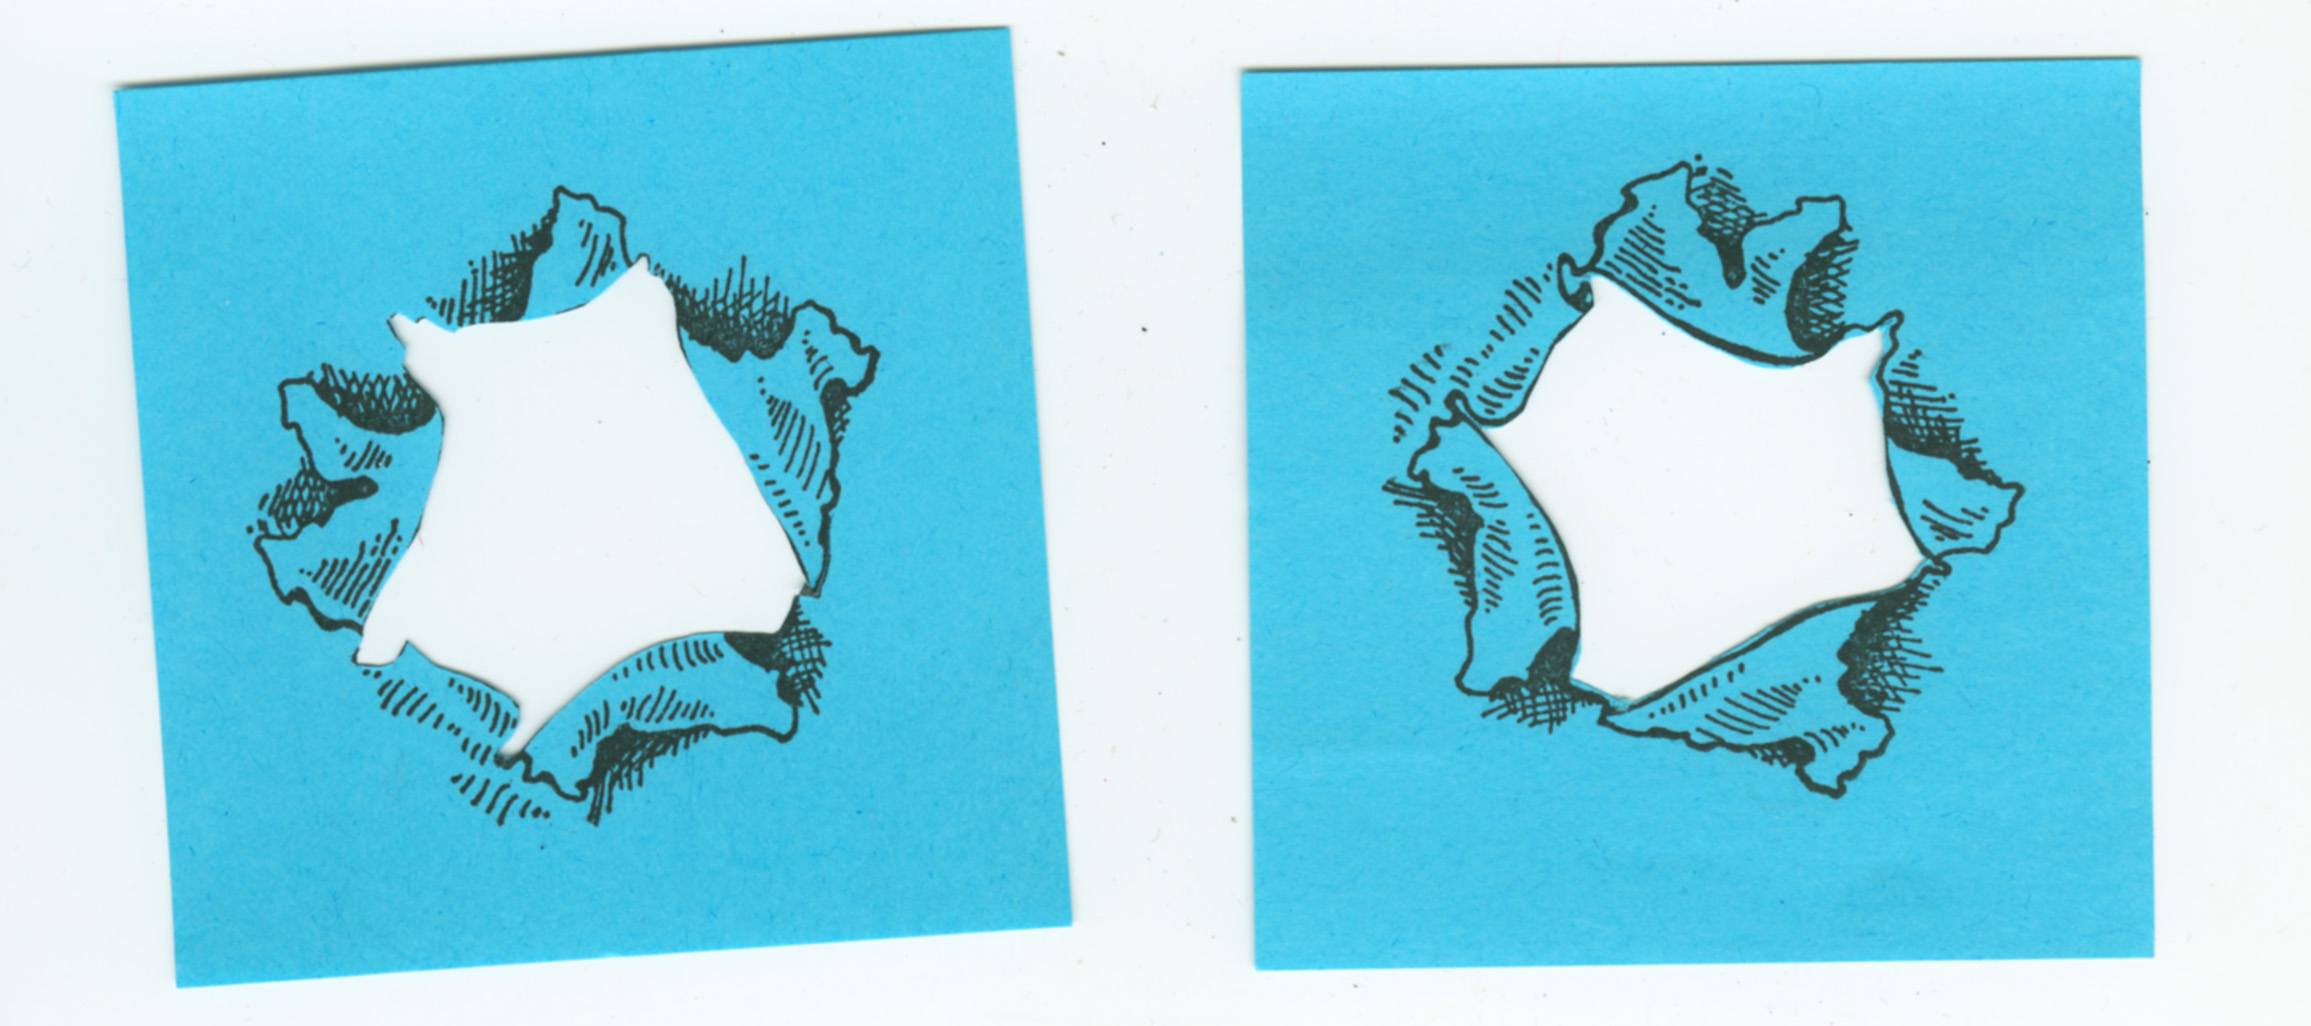 mortise masks stamped on post-it notes